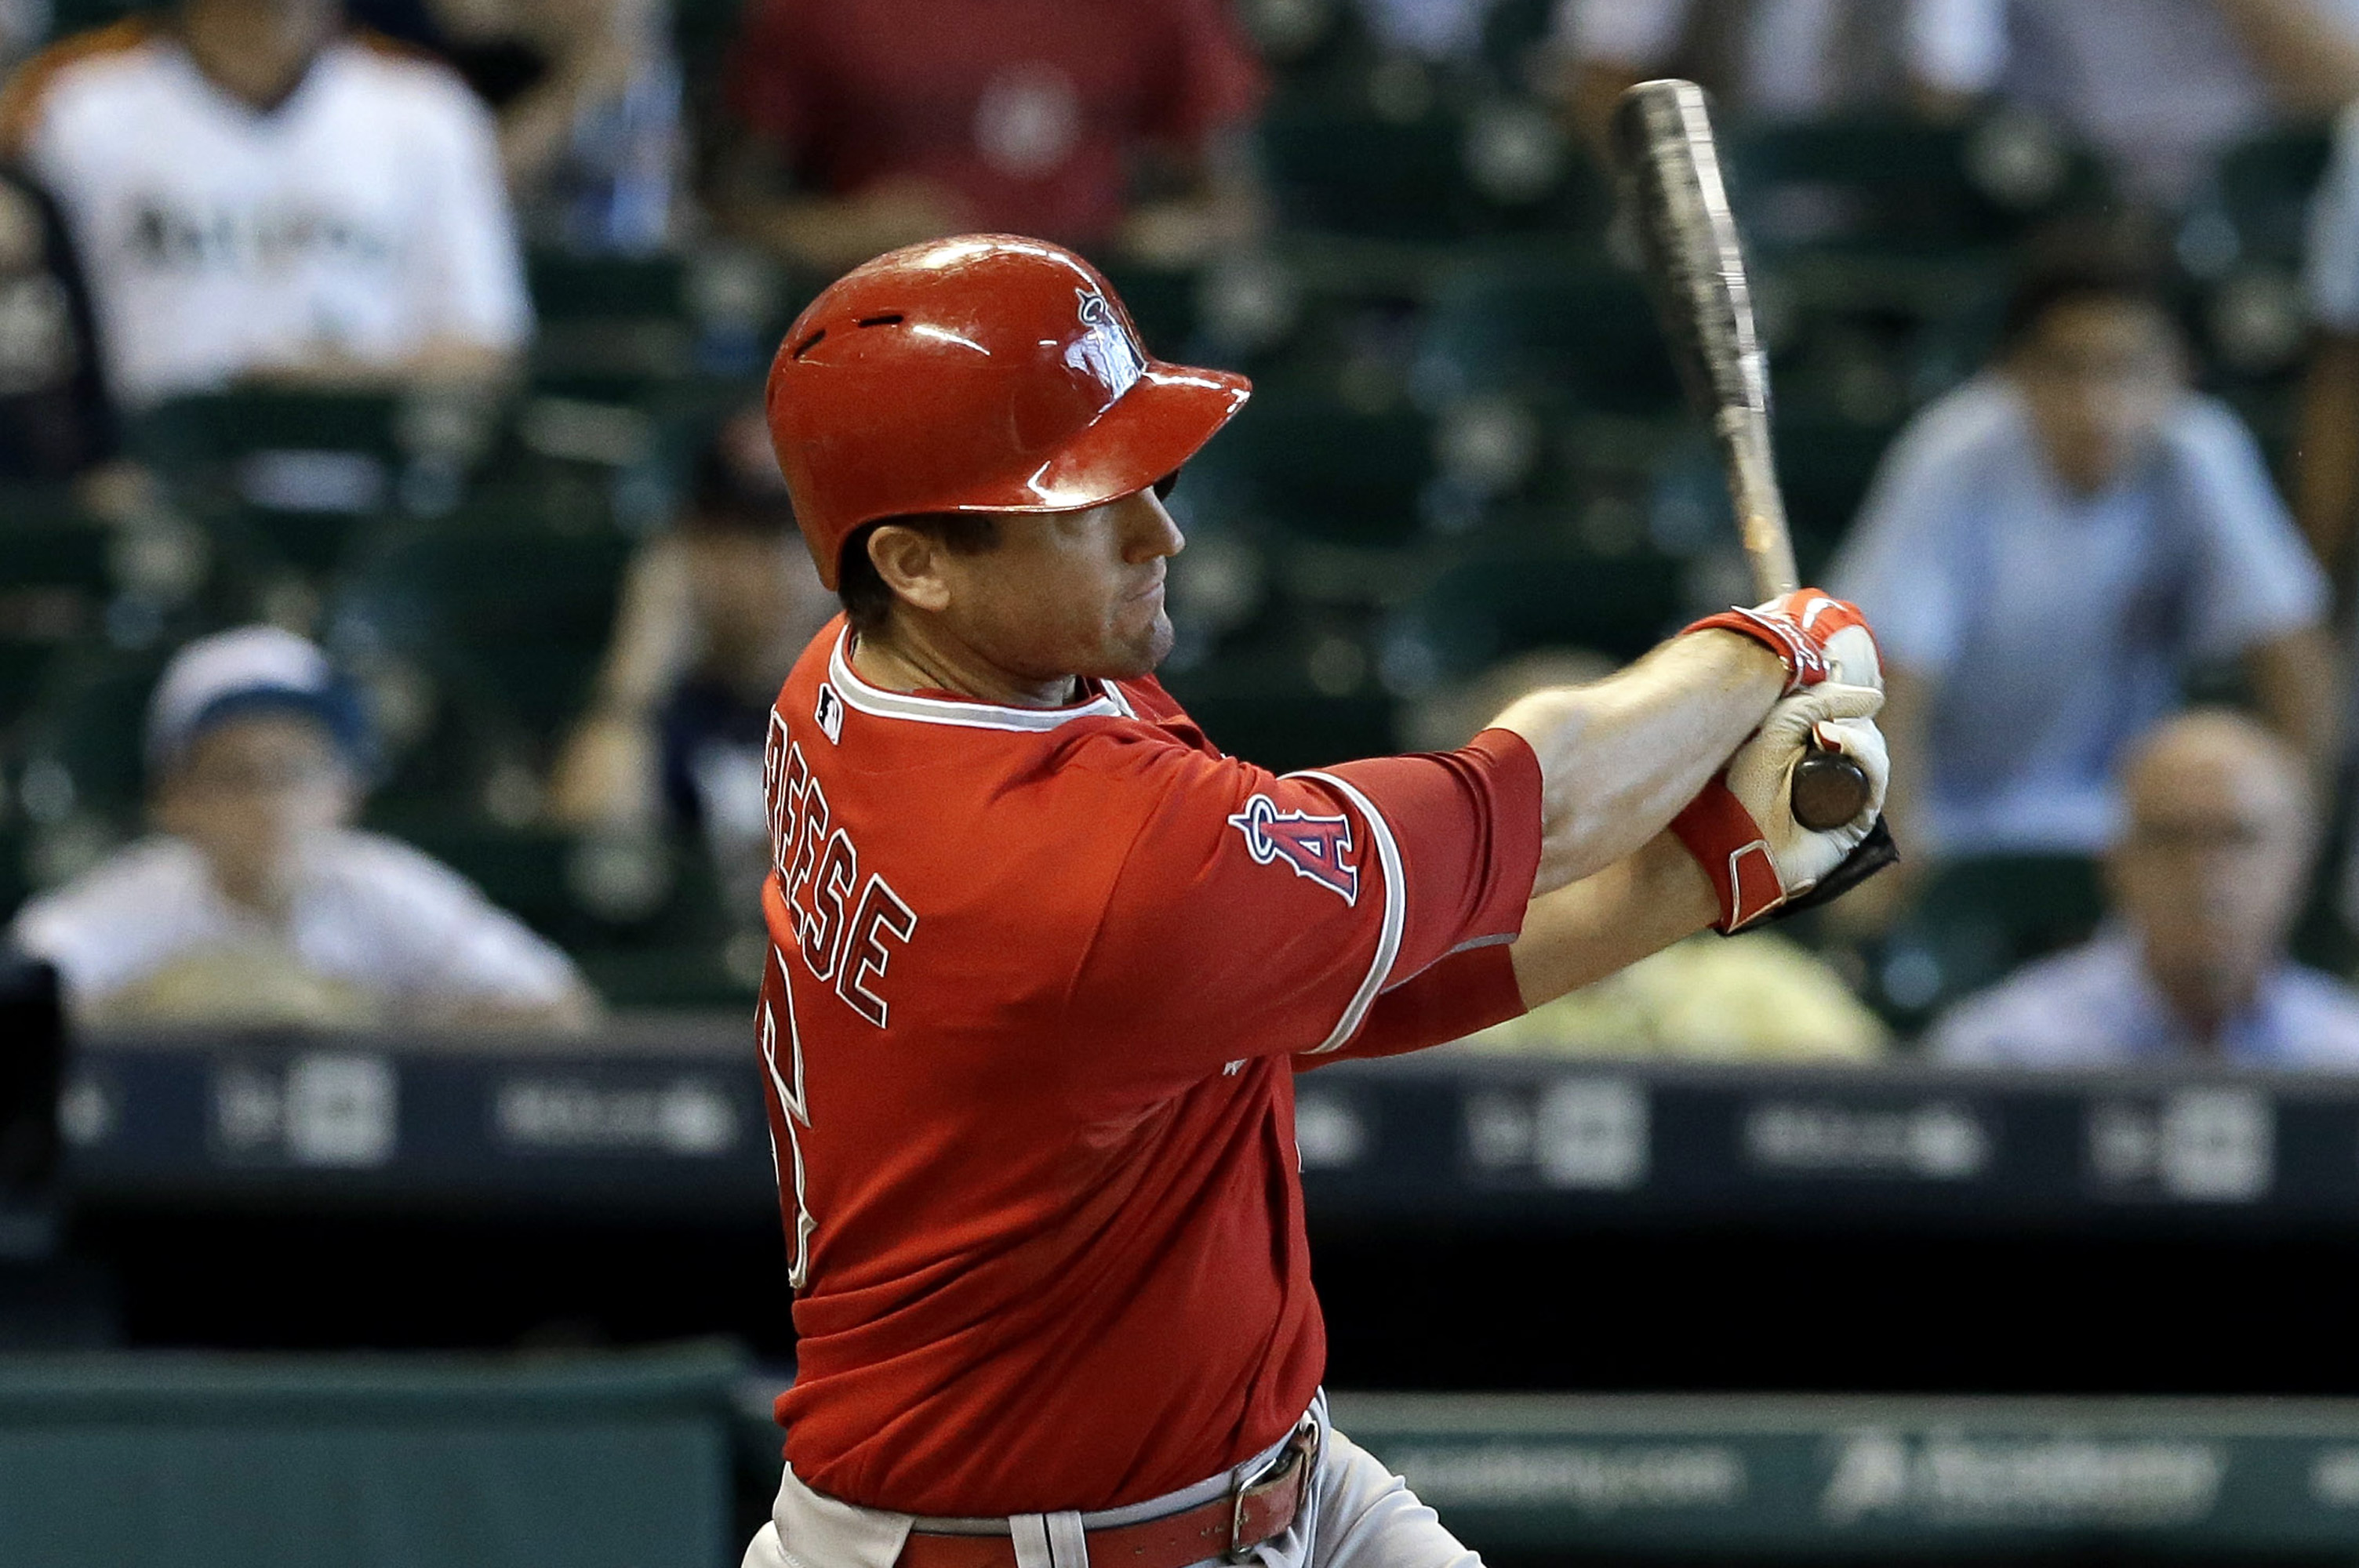 FILE - In this Sept. 23, 2015, file photo, Los Angeles Angels' David Freese hits a two-run double against the Houston Astros to put the Angels ahead in the eighth inning of a baseball game in Houston. Freese and the Pittsburgh Pirates have agreed to a $3